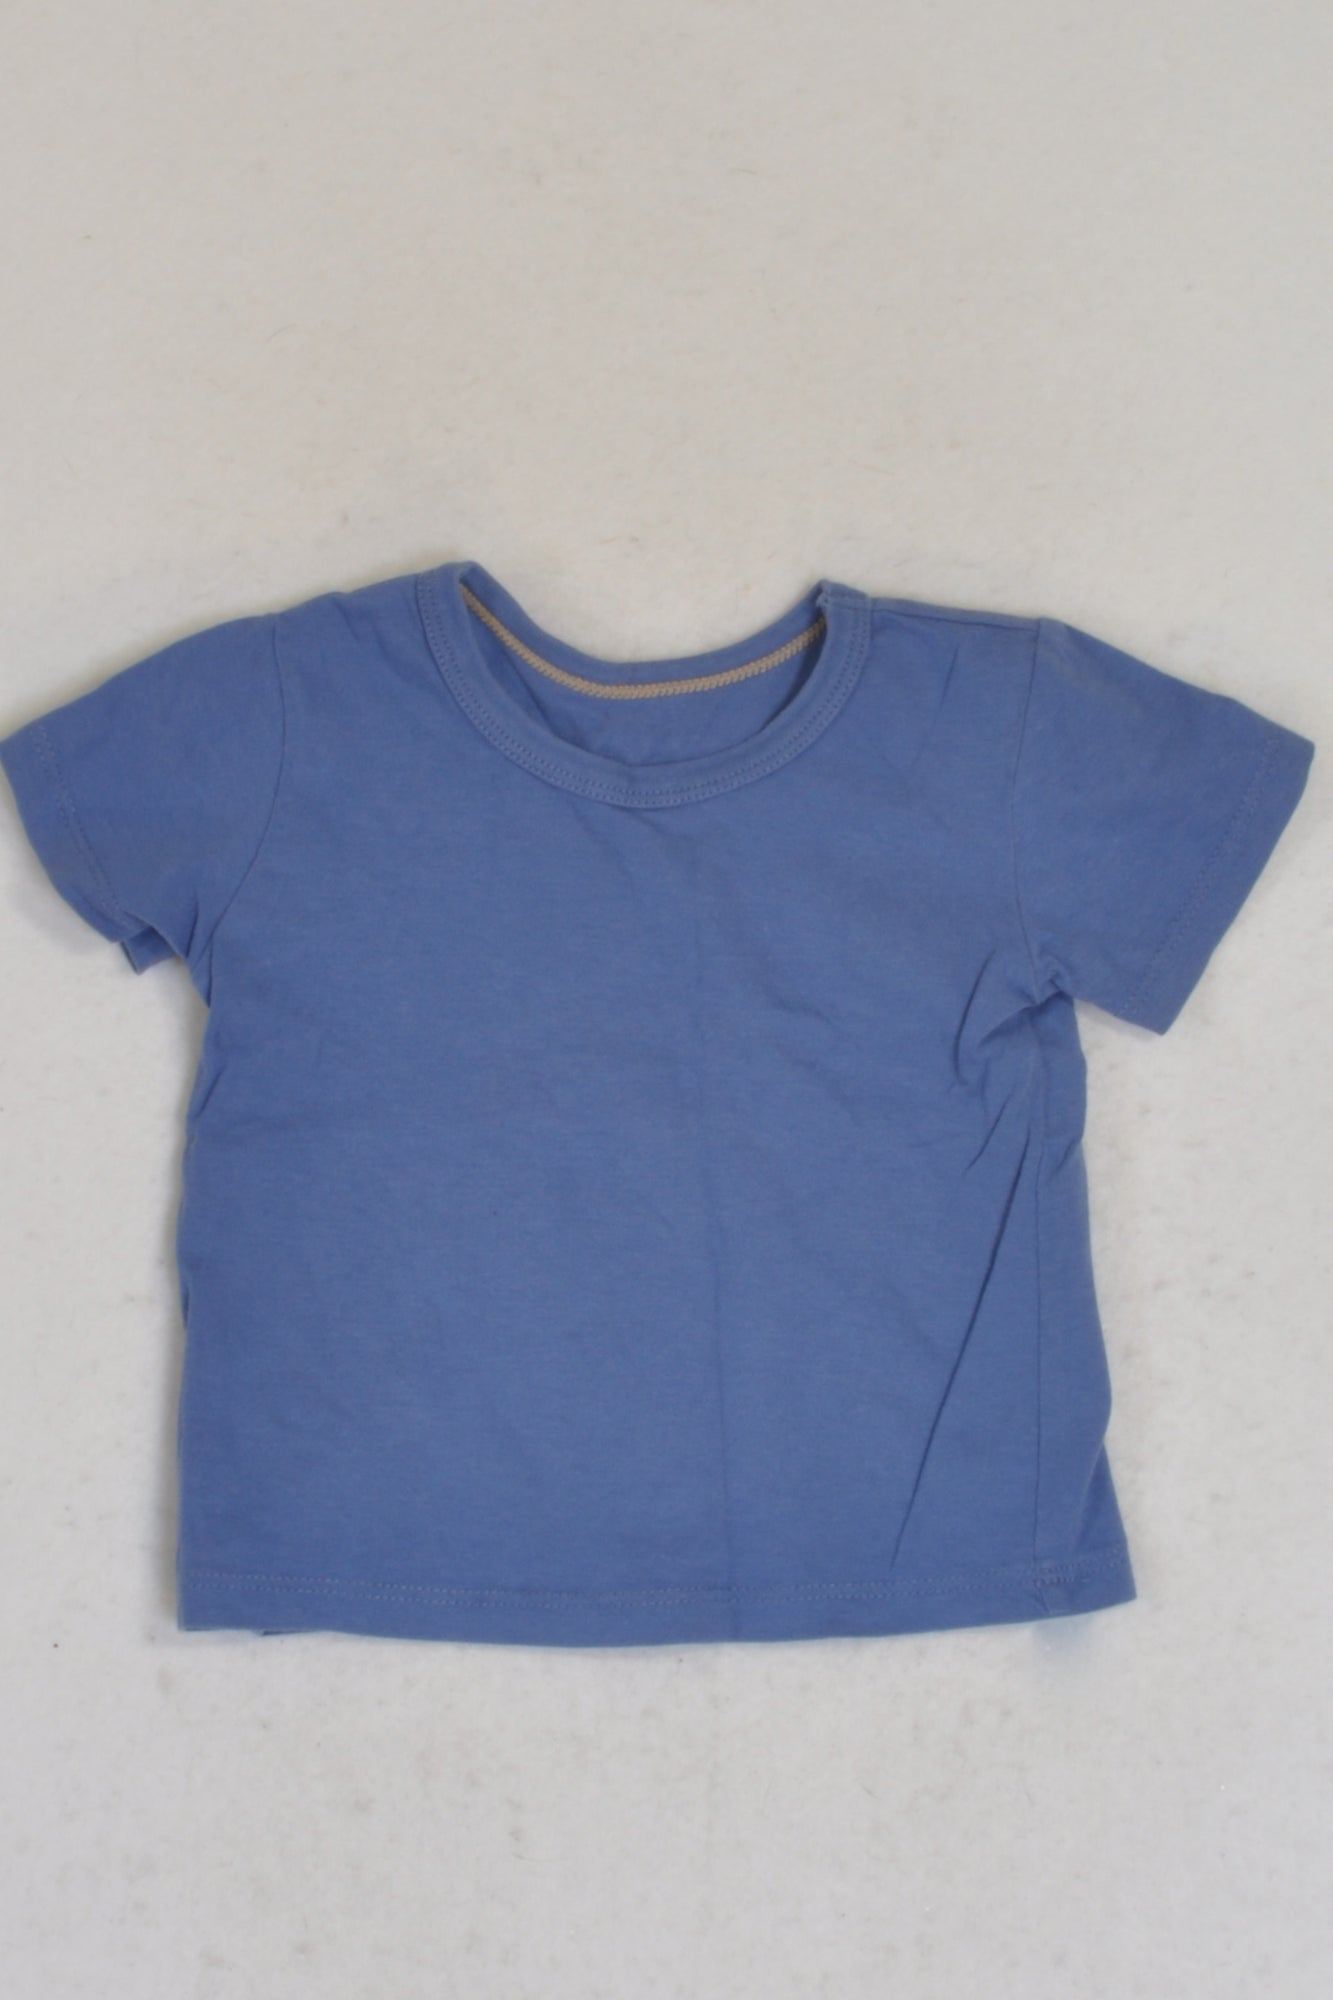 Woolworths Basic Blue T-shirt Boys 3-6 months